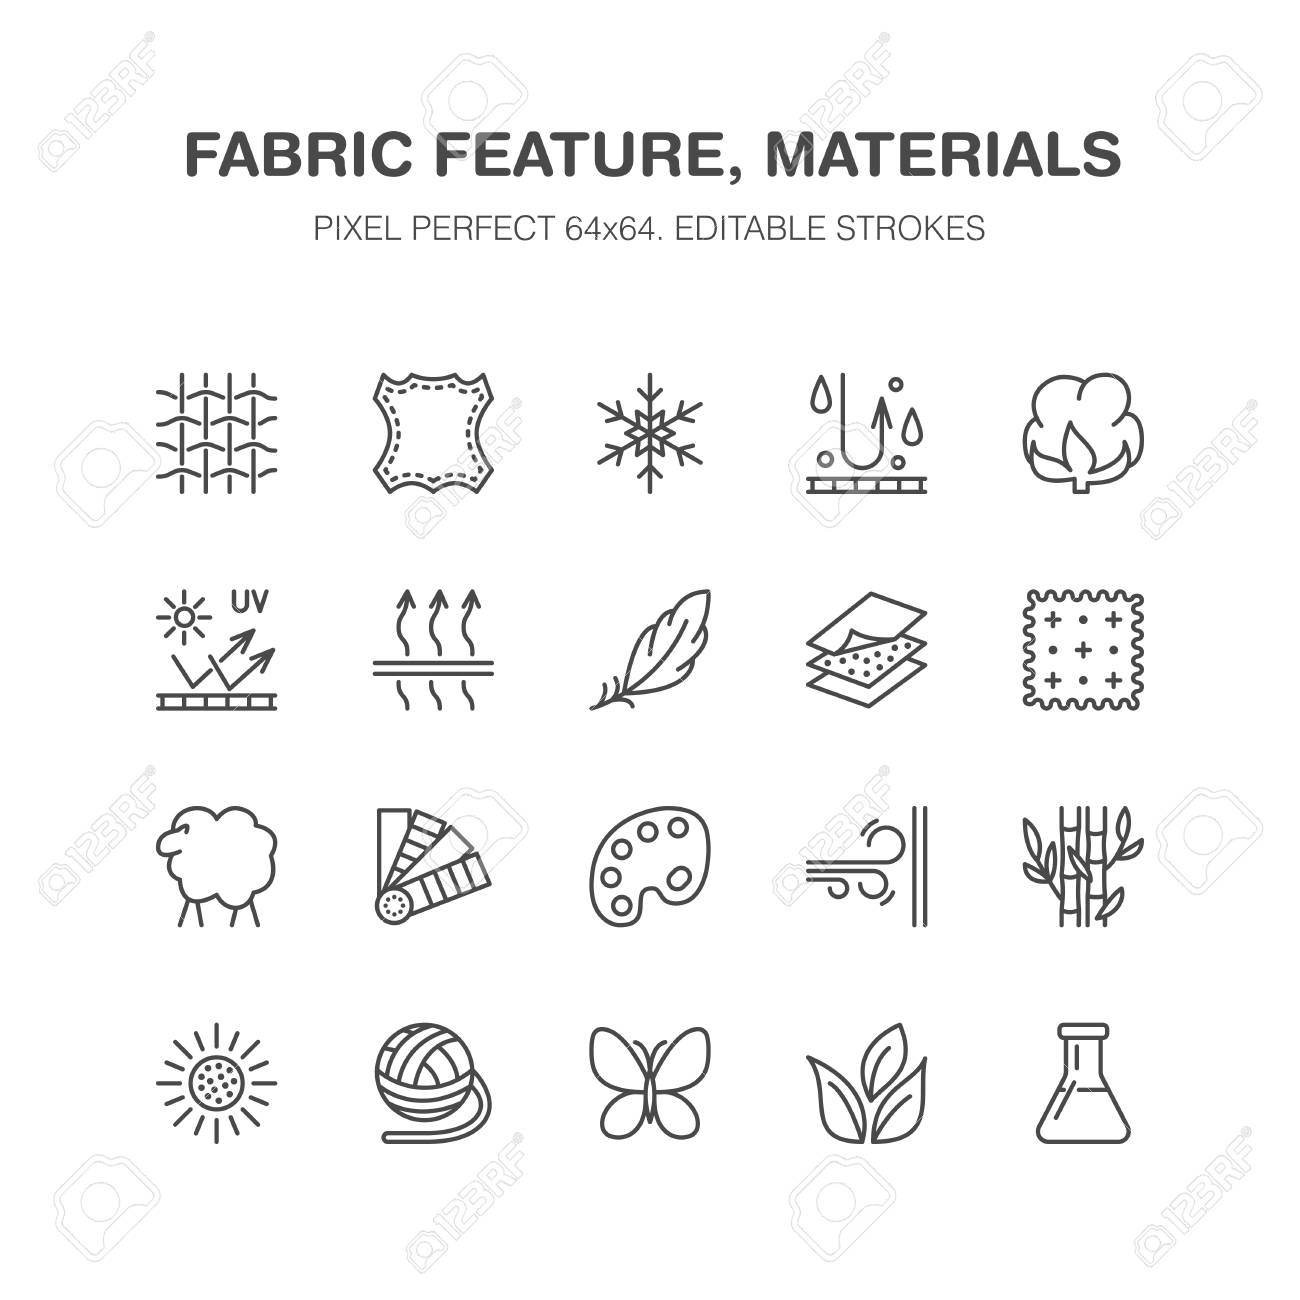 Fabric feature, clothes material vector flat line icons. Garment property symbols. Cotton wool, waterproof, wind resistant, uv protection. Wear label, textile industry pictogram. Pixel perfect 64x64. - 92925857